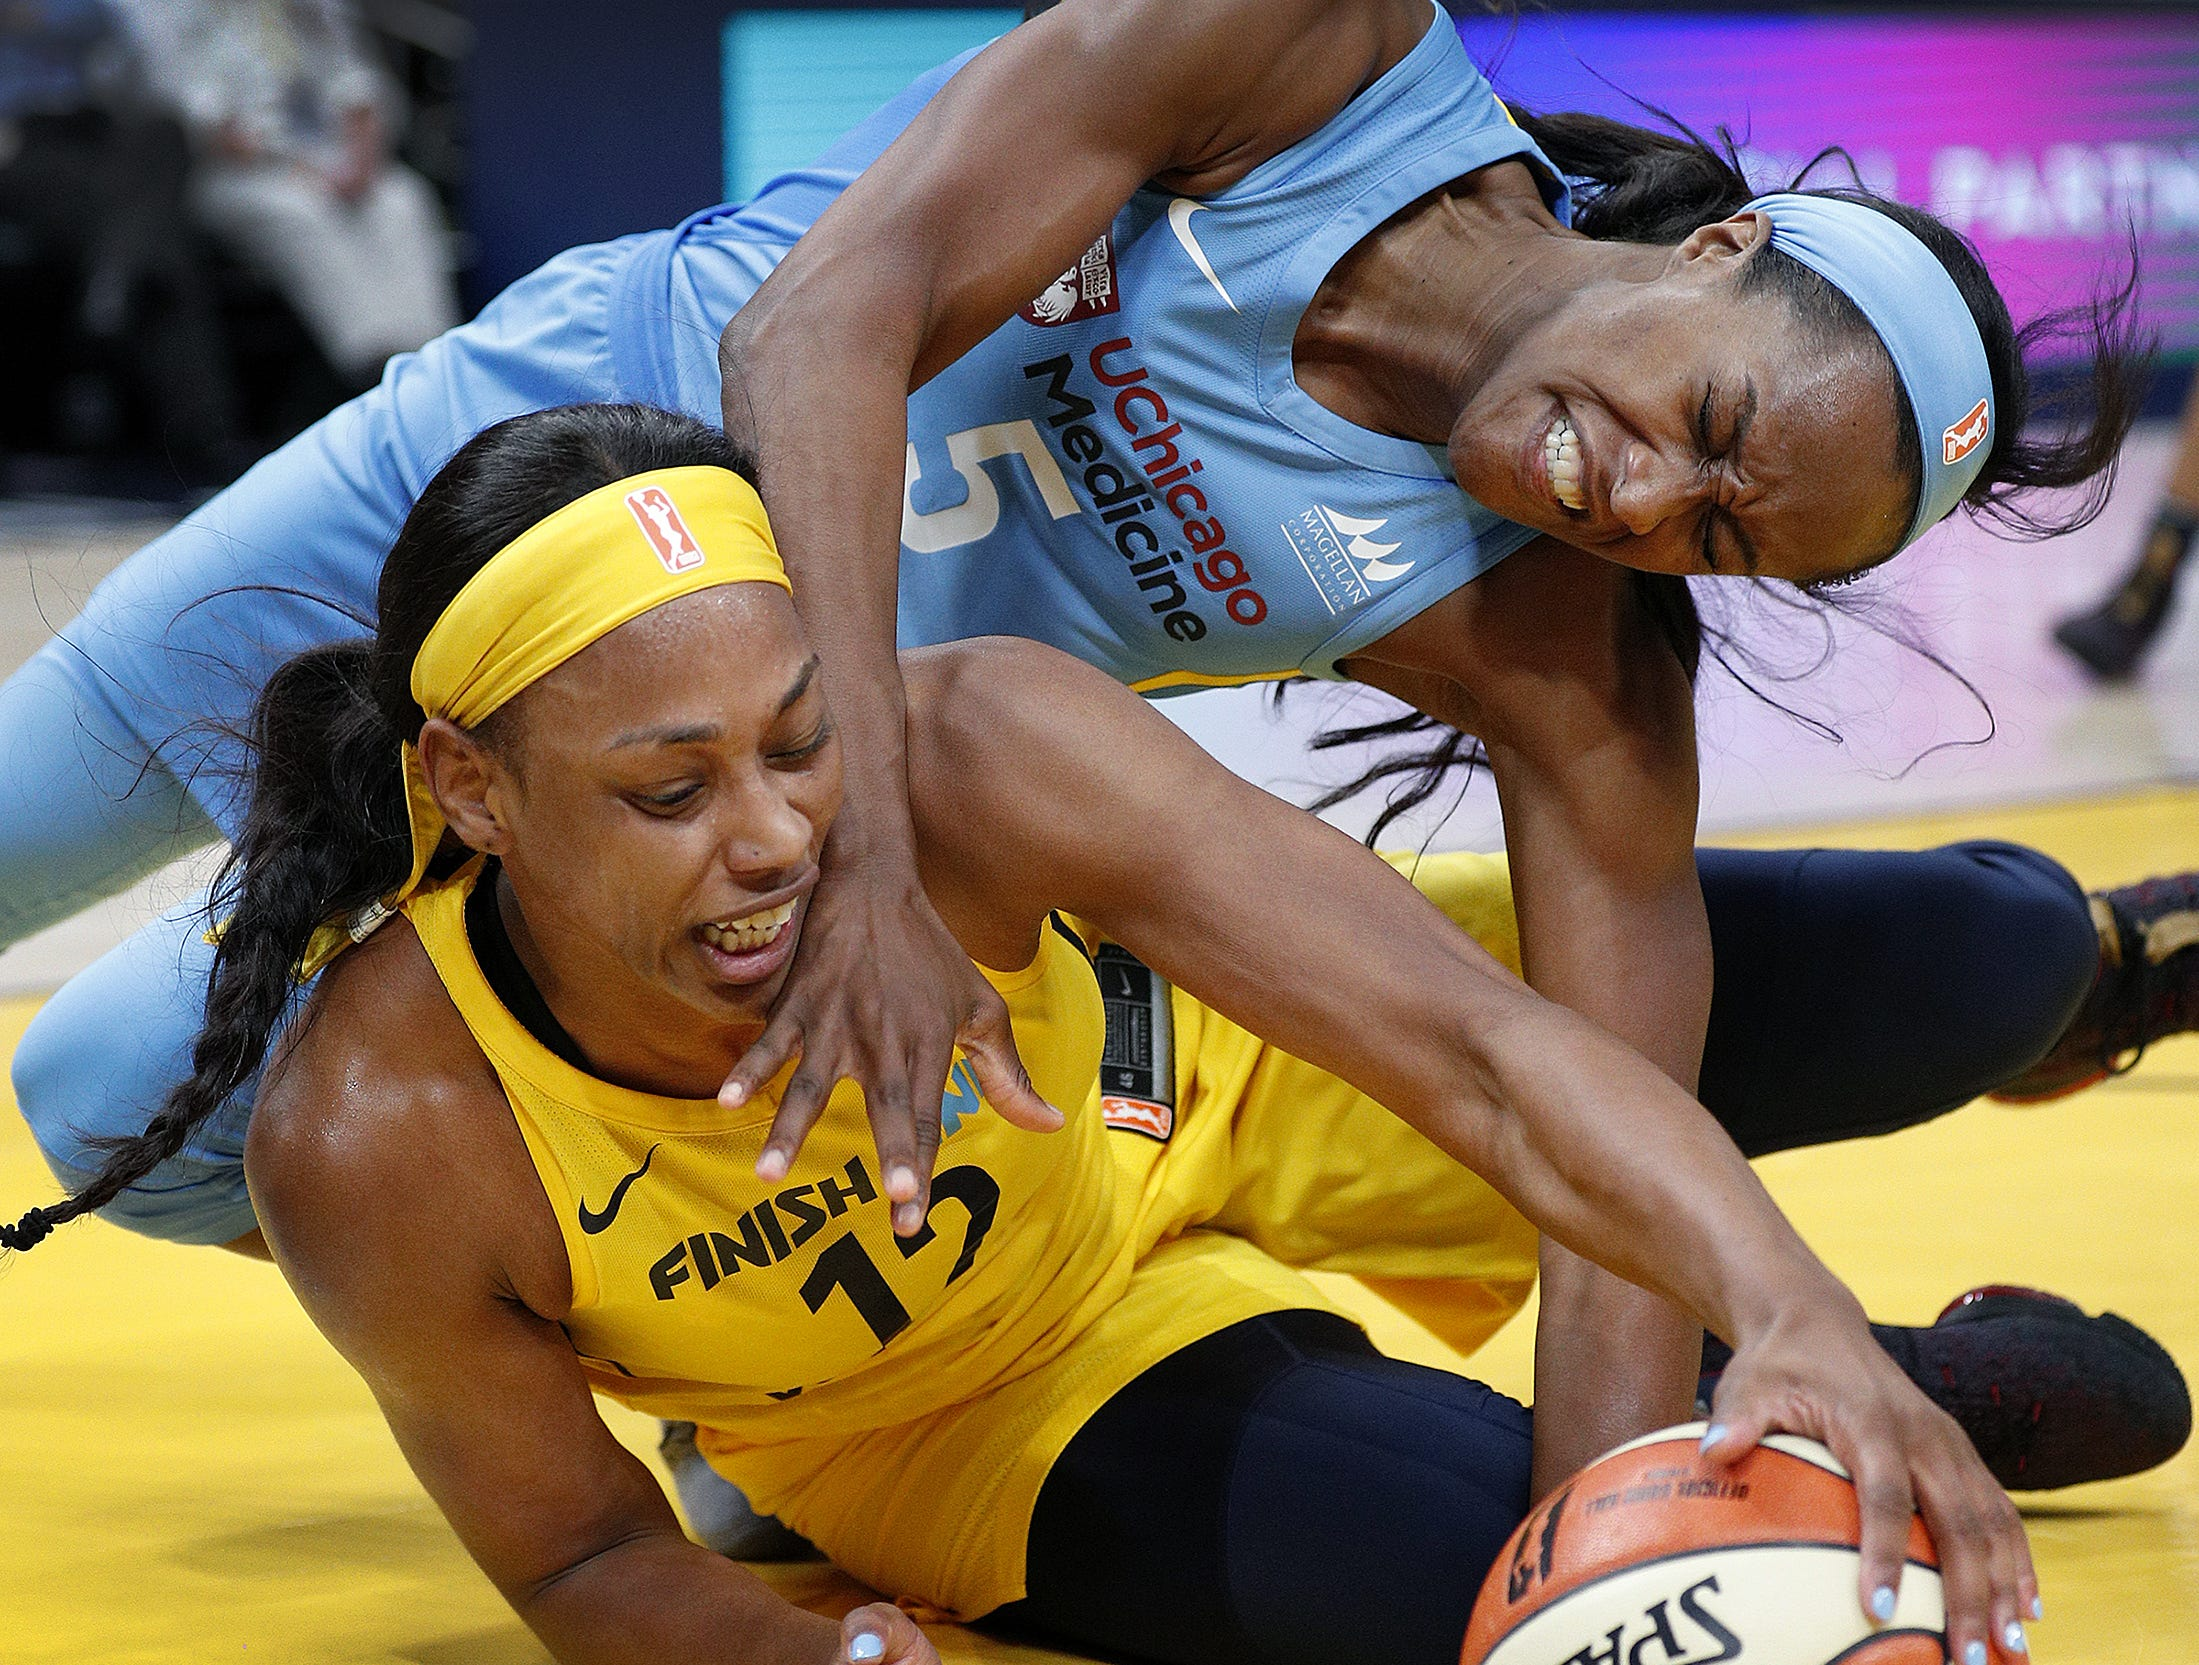 Indiana Fever forward Bashaara Graves (12) fights for a loose ball with Chicago Sky guard Chelsea Hopkins (5) in the first half of their WNBA preseason basketball game at Bankers Life Fieldhouse on Monday, May 7, 2018.